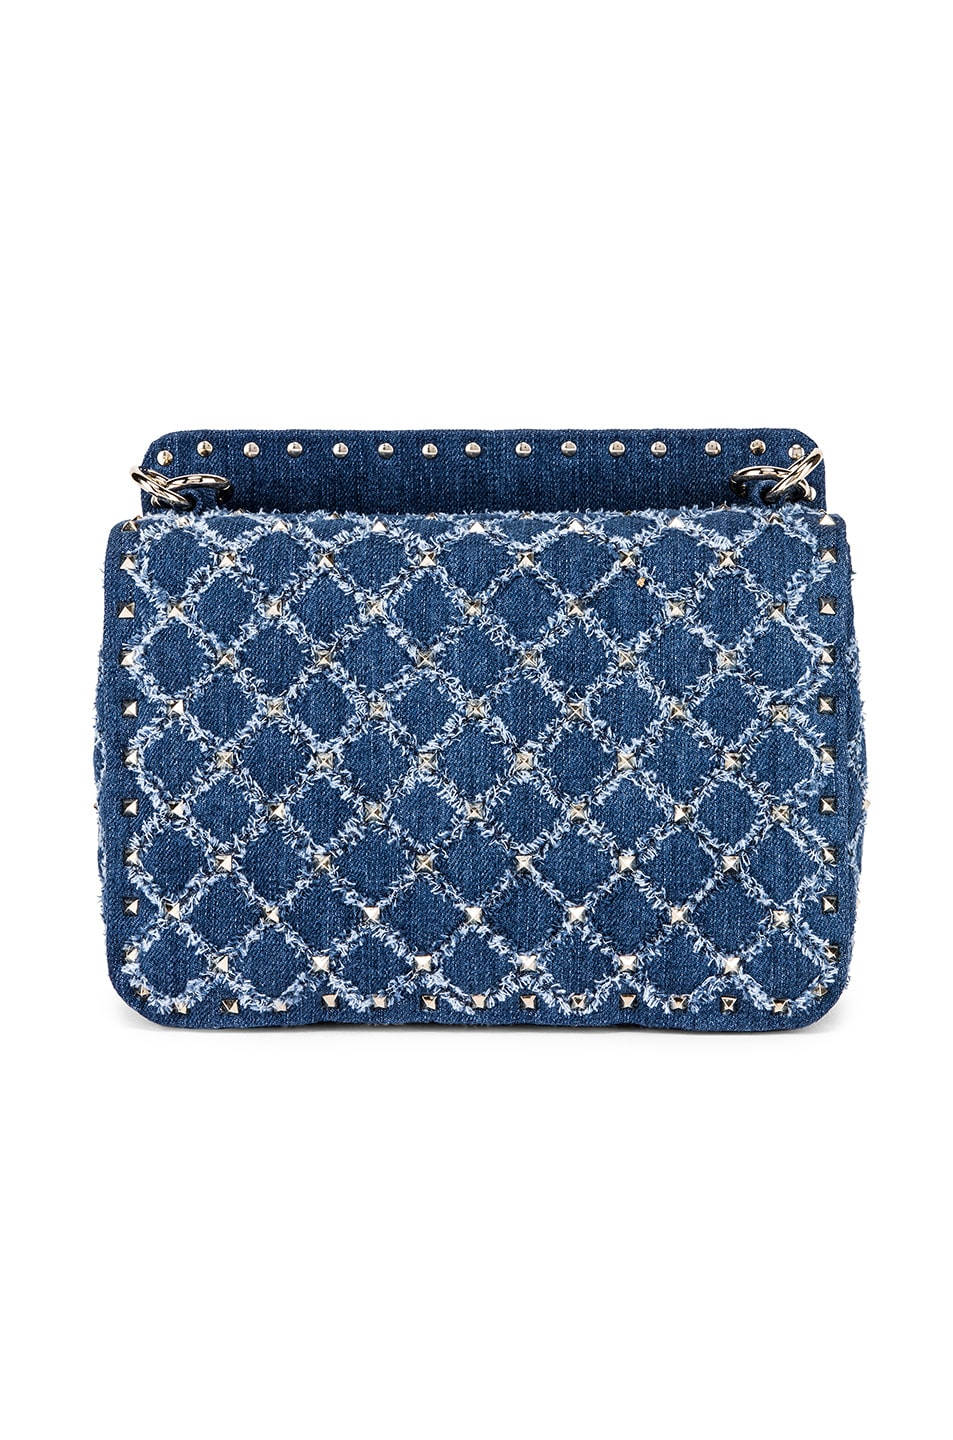 Image 3 of Valentino Rockstud Spike Medium Shoulder Bag in Denim